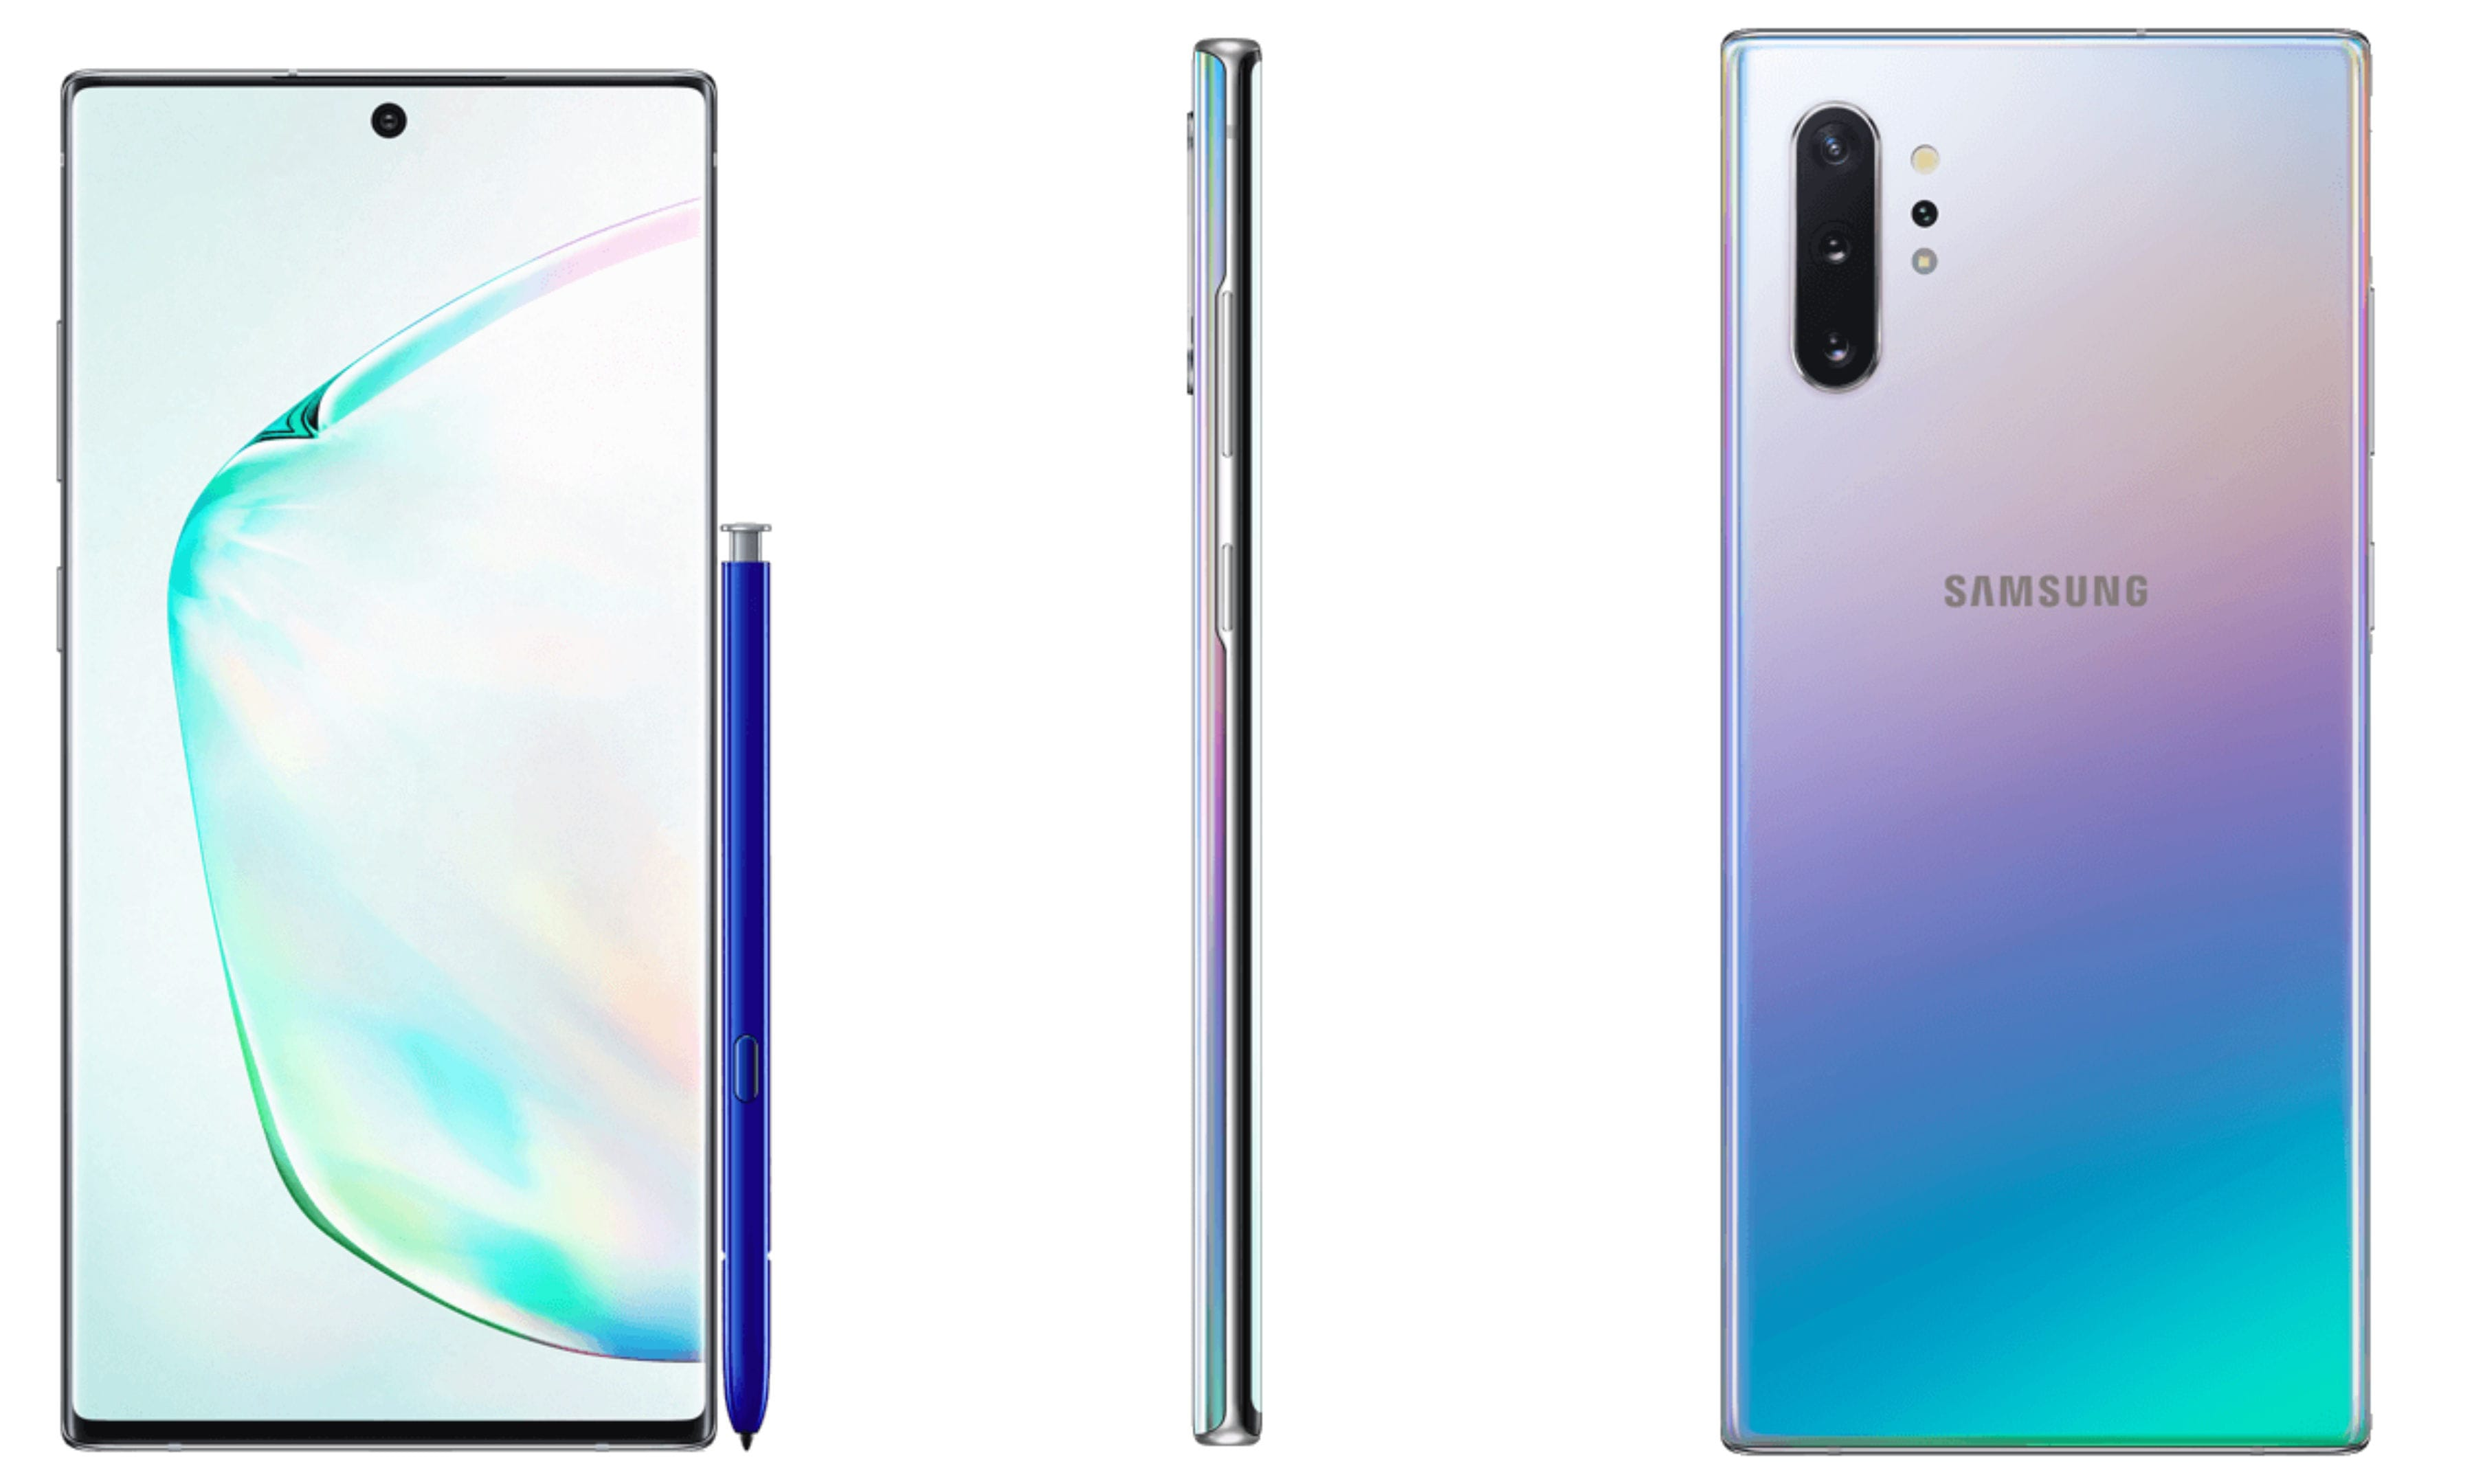 4. Samsung Galaxy Note 10 Plus